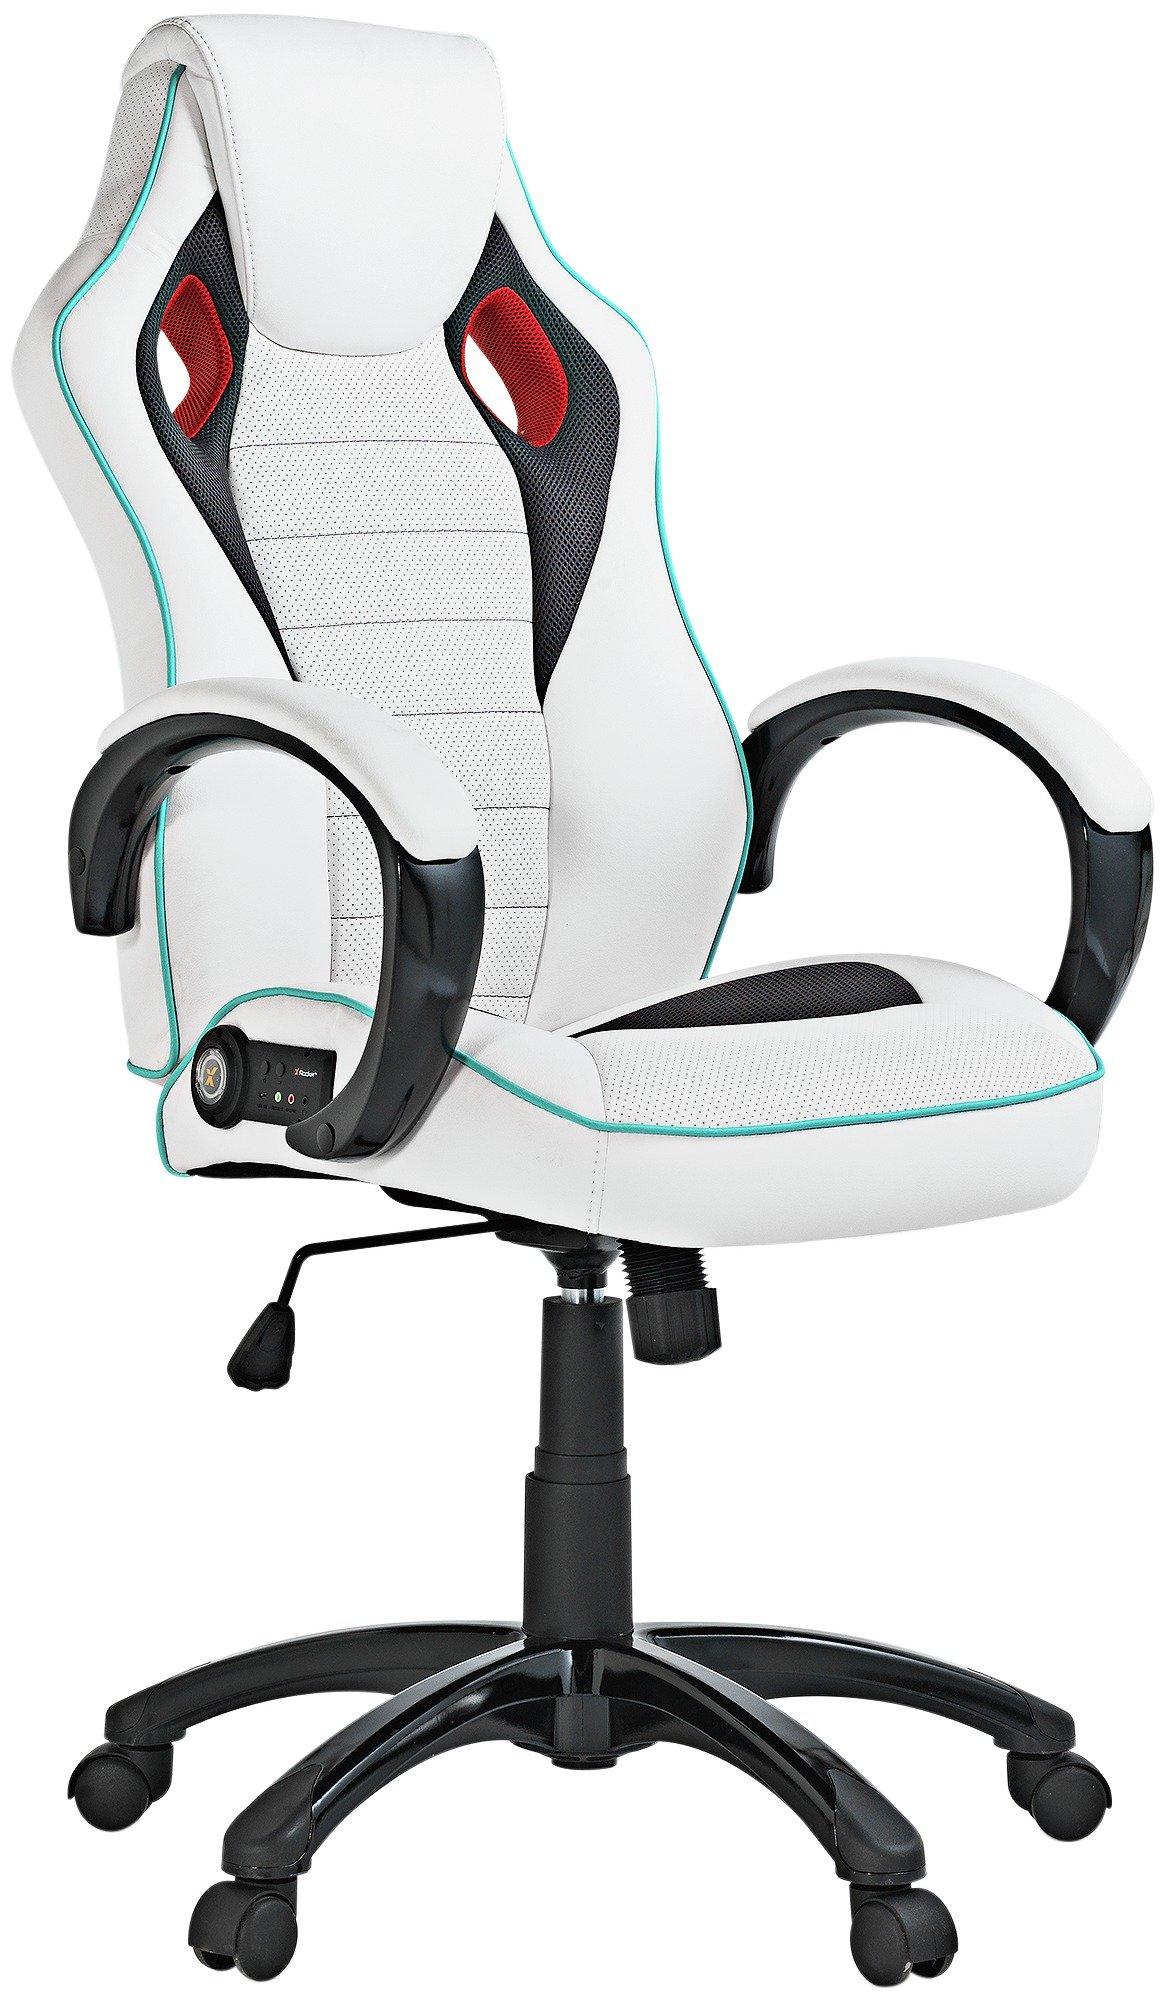 console gaming chair with long back x rocker archives buy refurbished